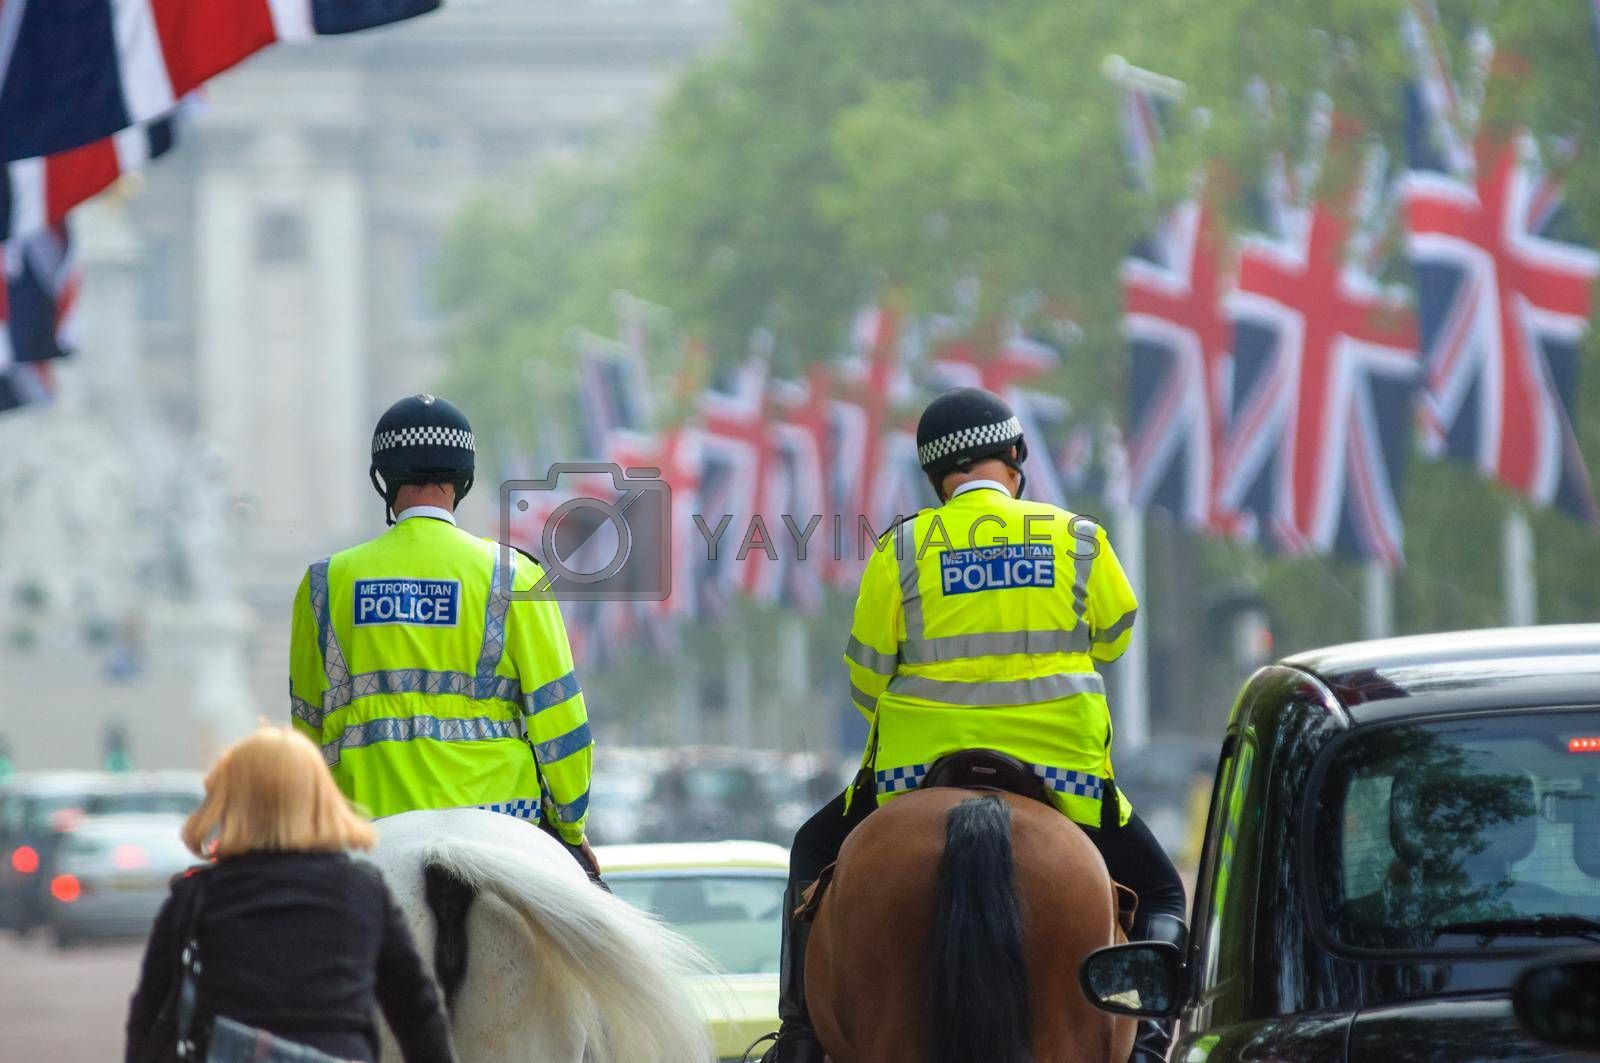 LONDON, UK - CIRCA APRIl 2011: Two mounted police officers on the Mall, Buckingham Palace in the background.